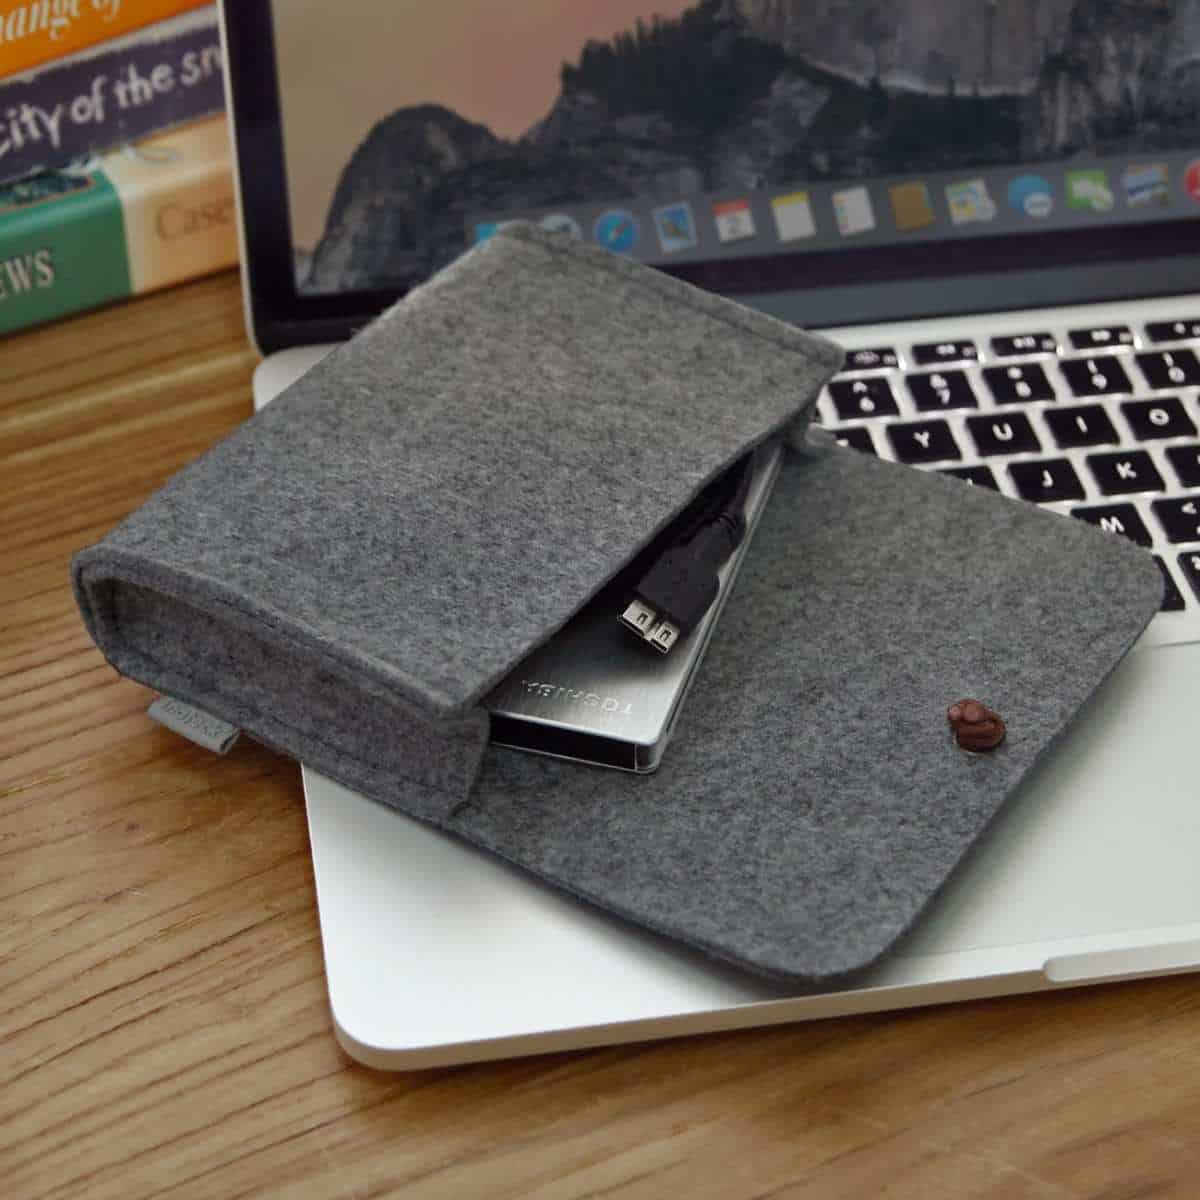 Inateck Felt Storage Pouch Bag Case | Best Macbook Accessories for 2019